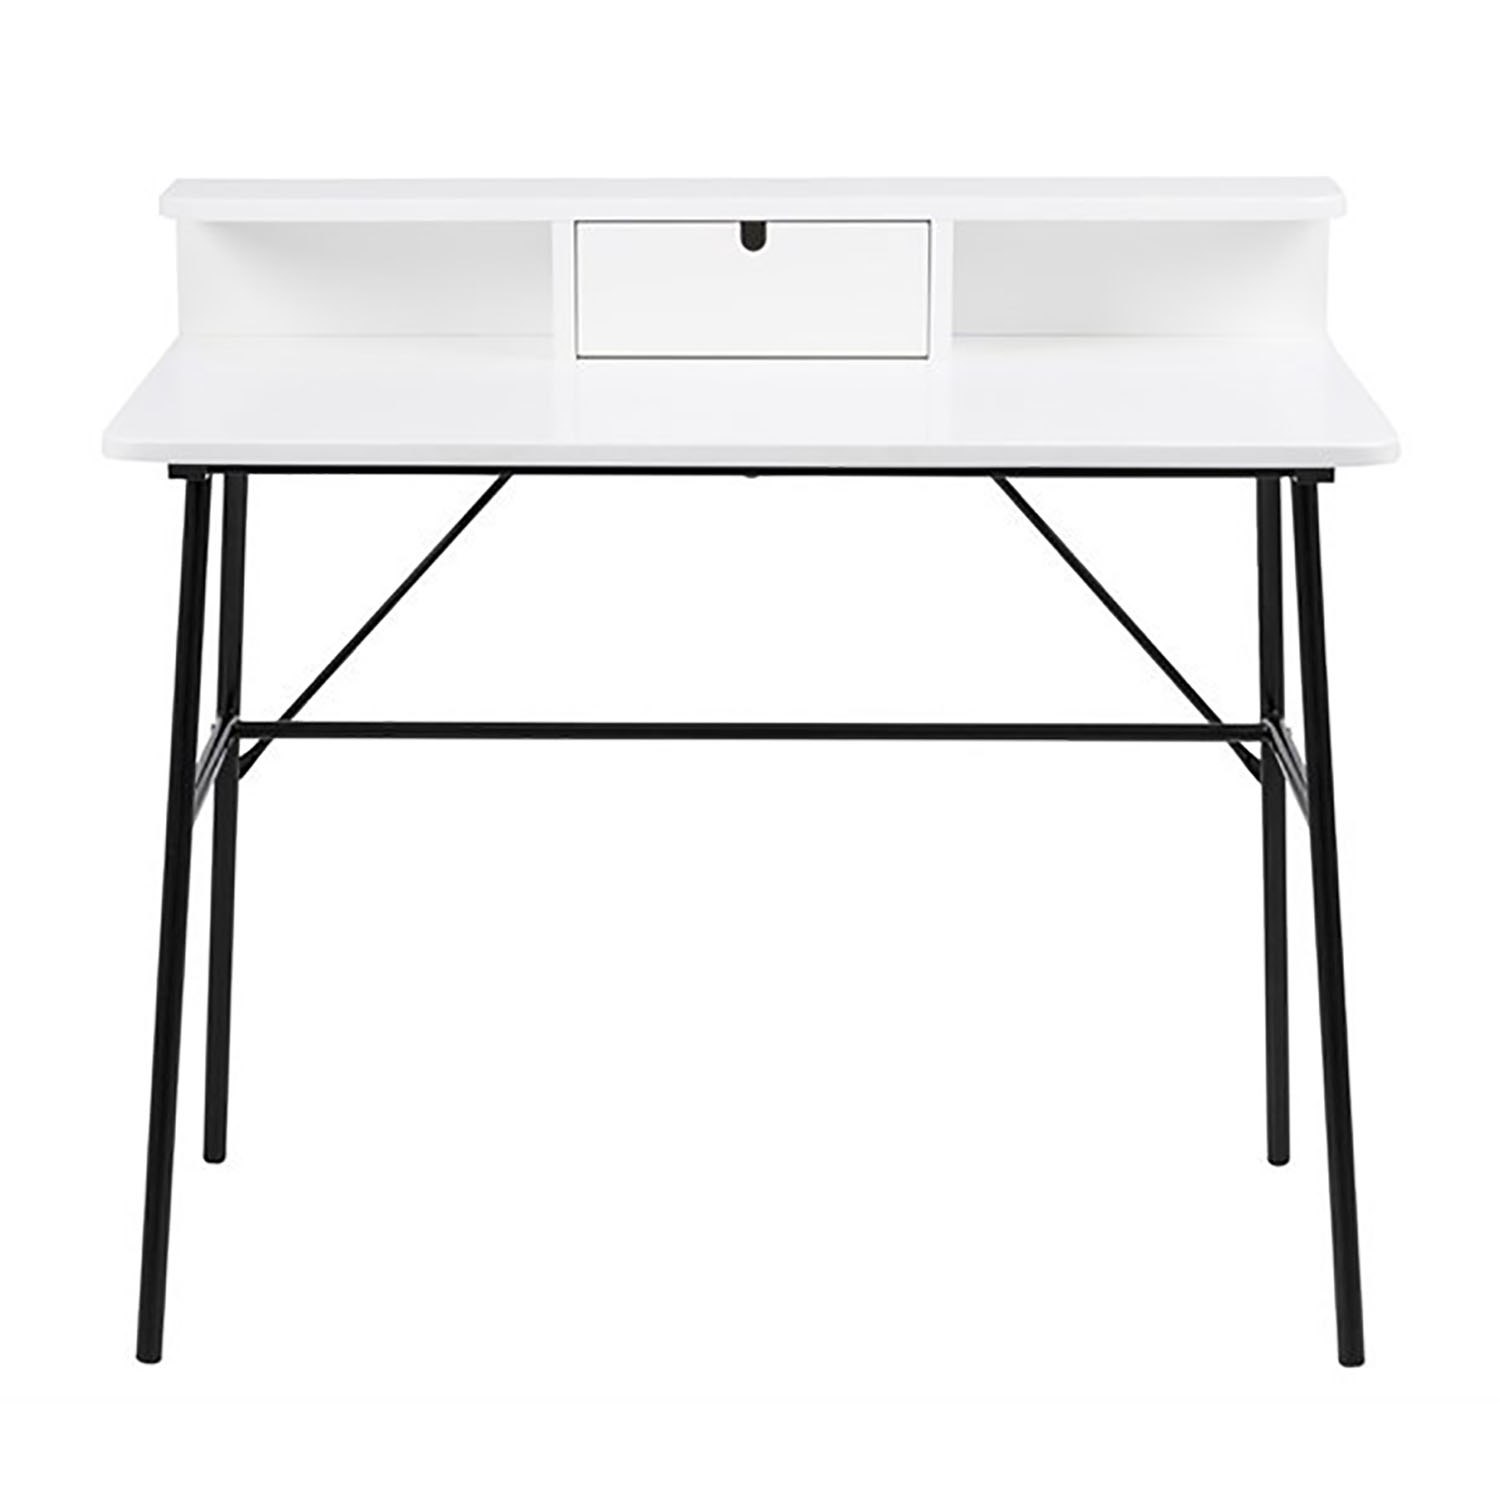 Pluto Desk with Drawer